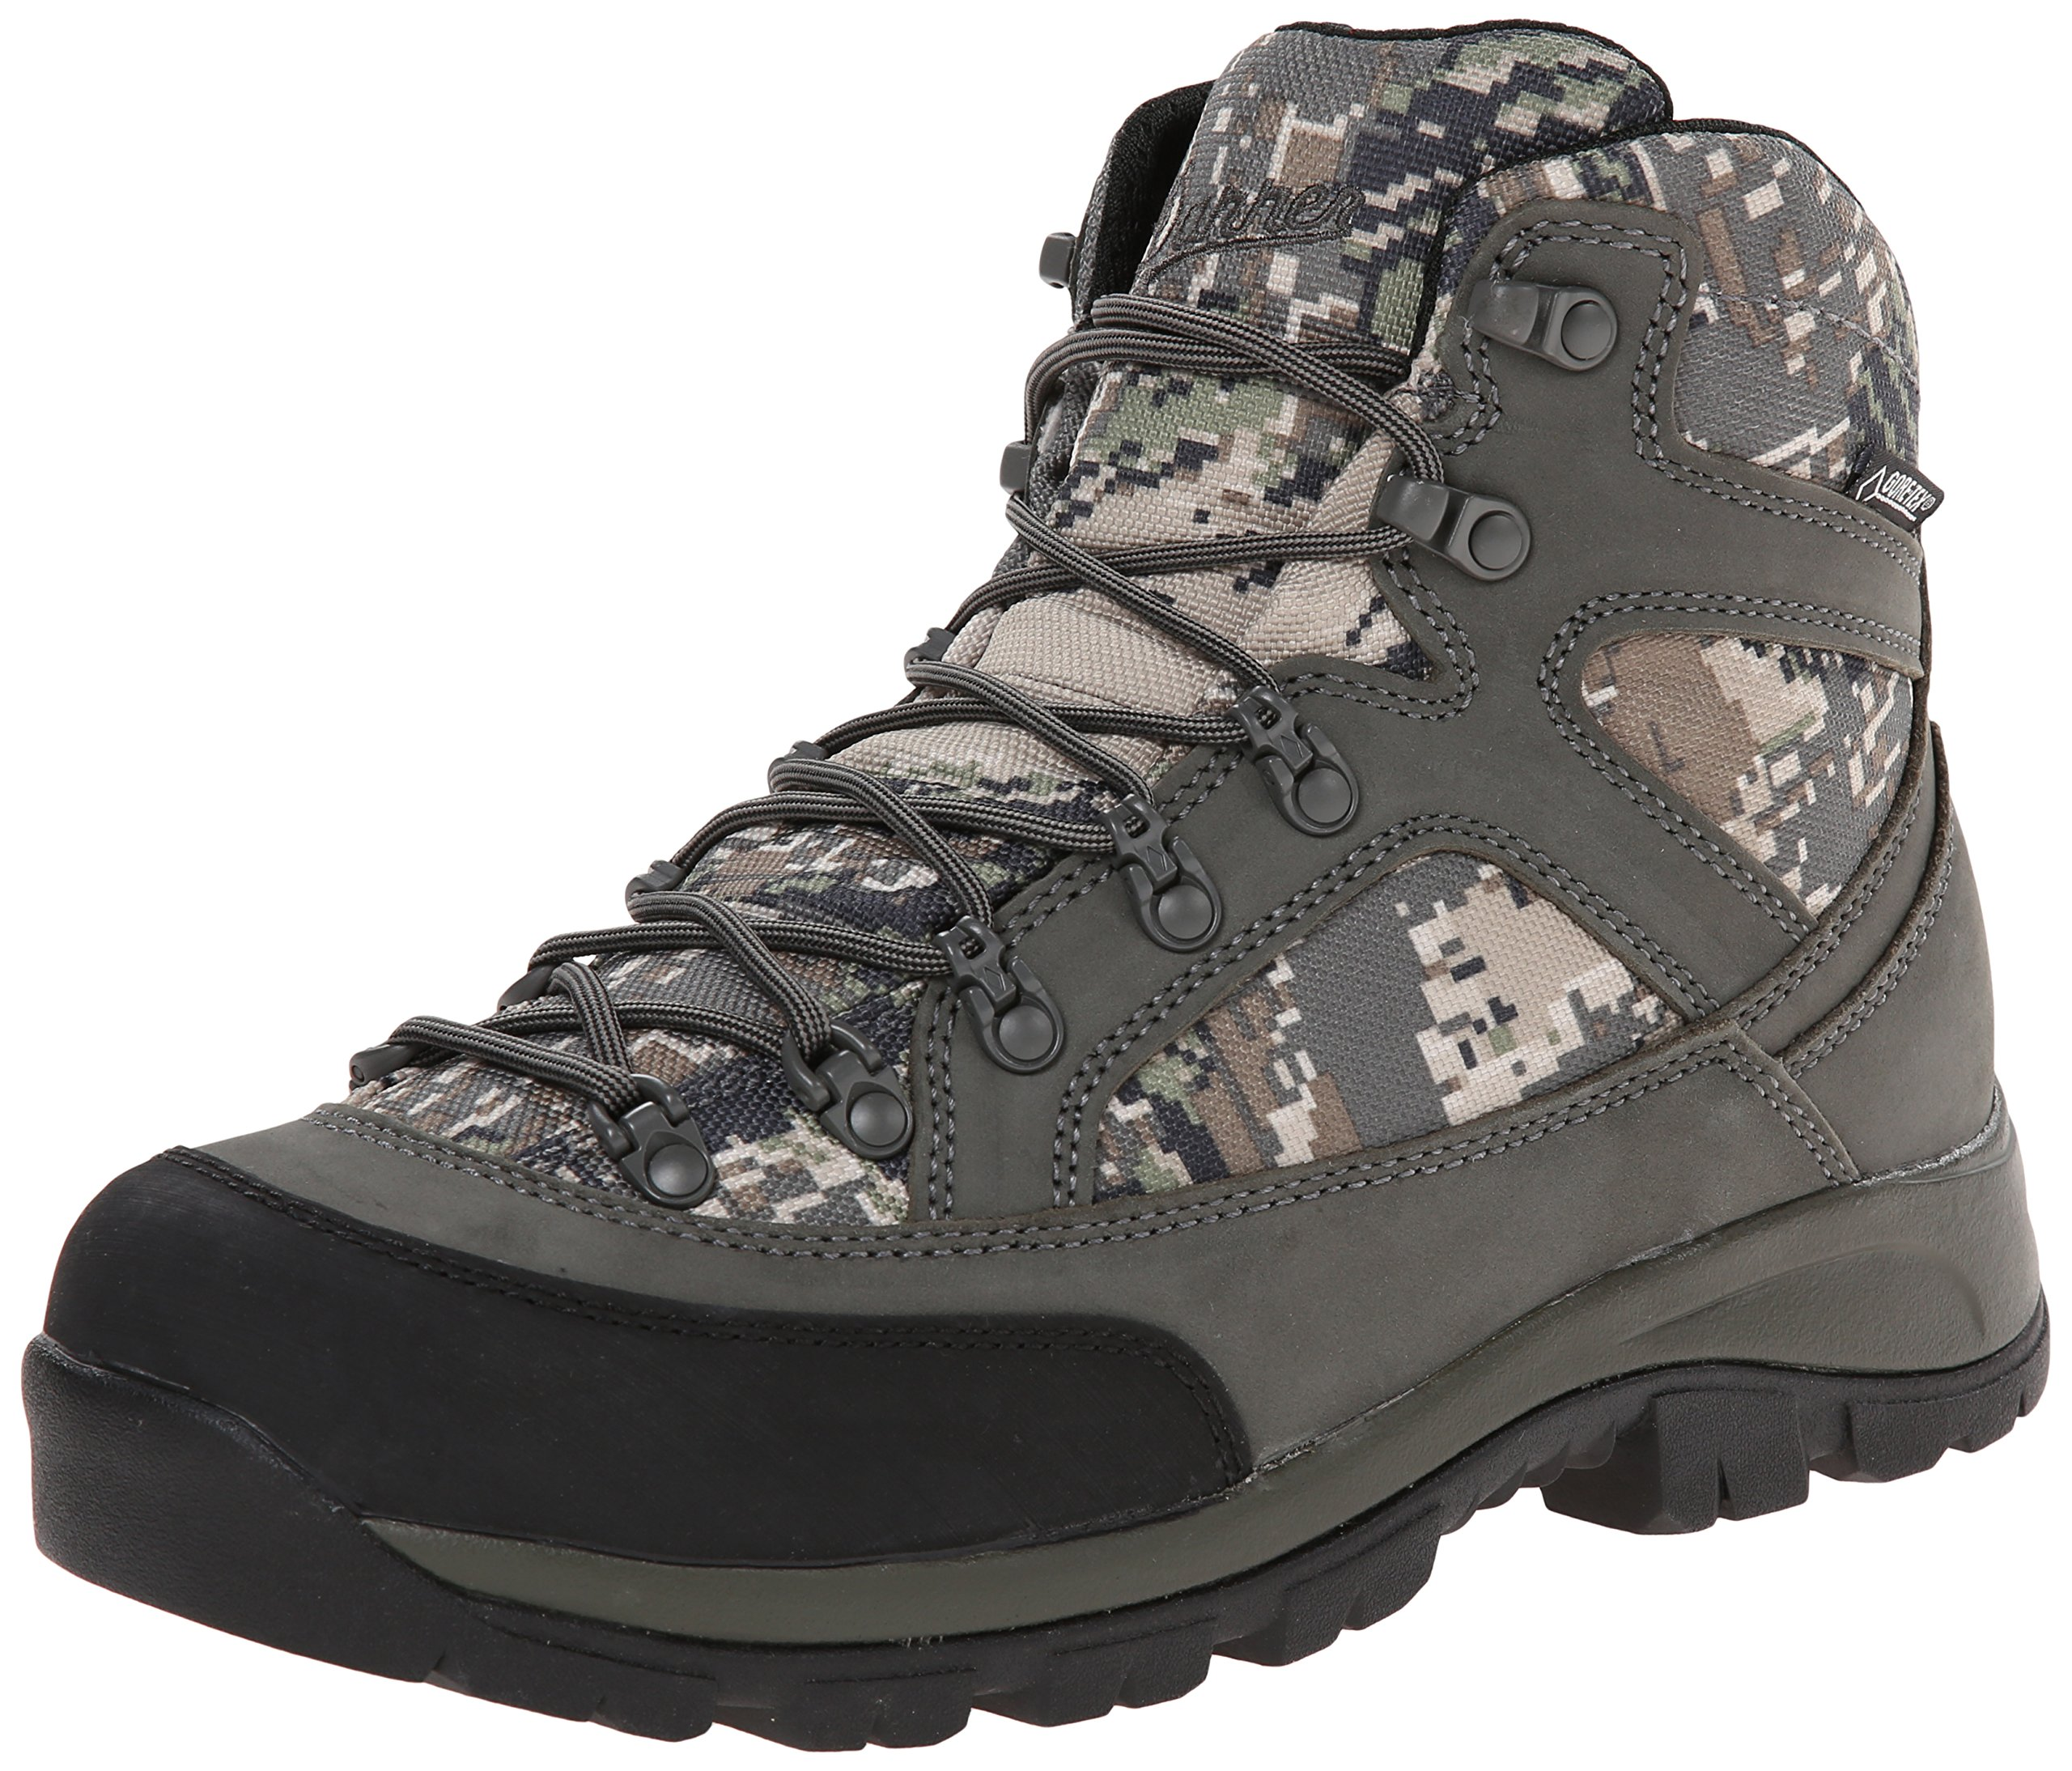 Danner Men's Gila 6 Inch Optifade Open Country Hunting Boot,Optifade Open Country/Grey,8.5 D US